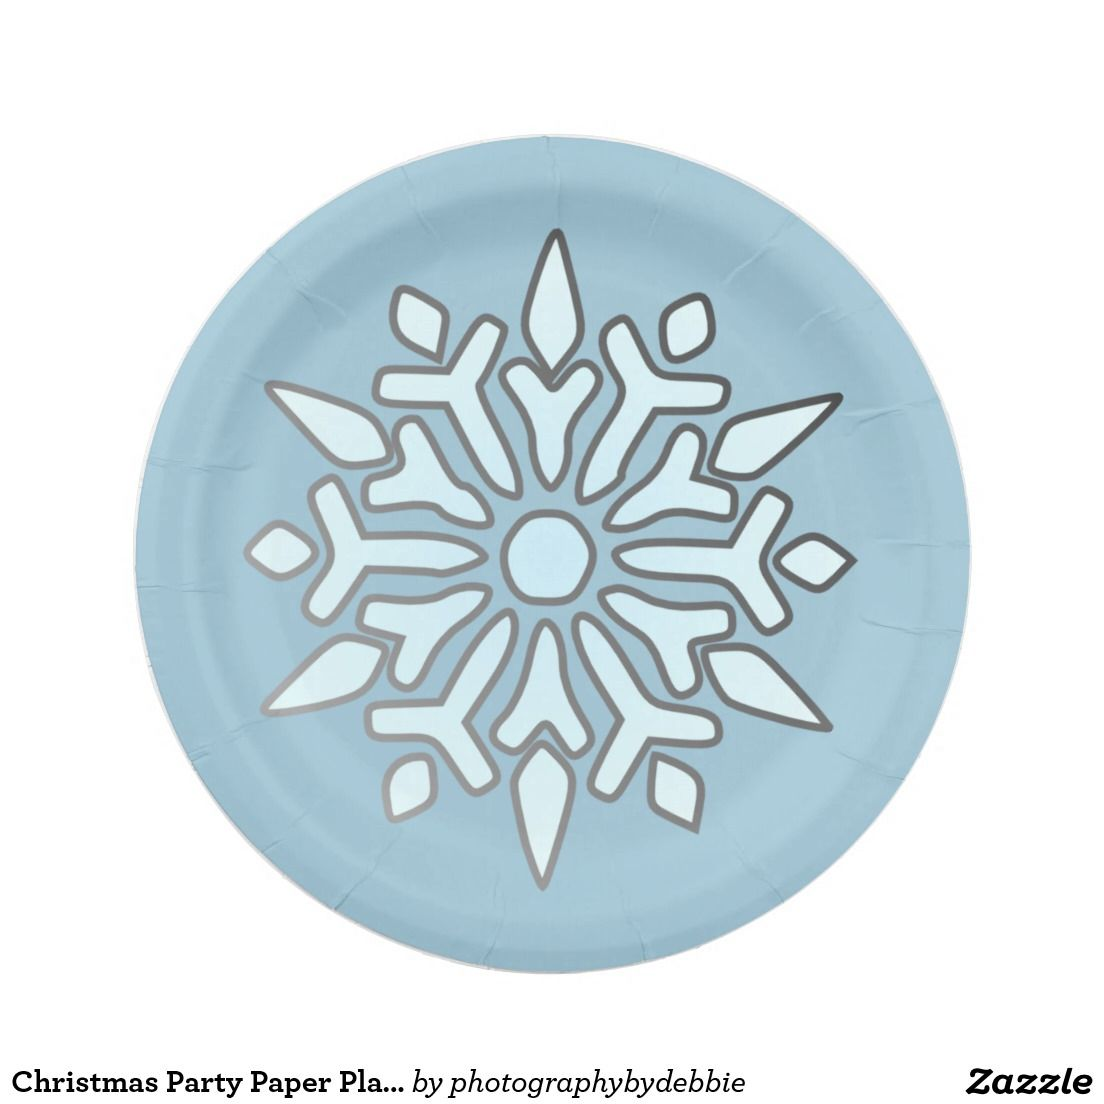 sc 1 st  Pinterest & Christmas Party Paper Plate-Snowflake Paper Plate